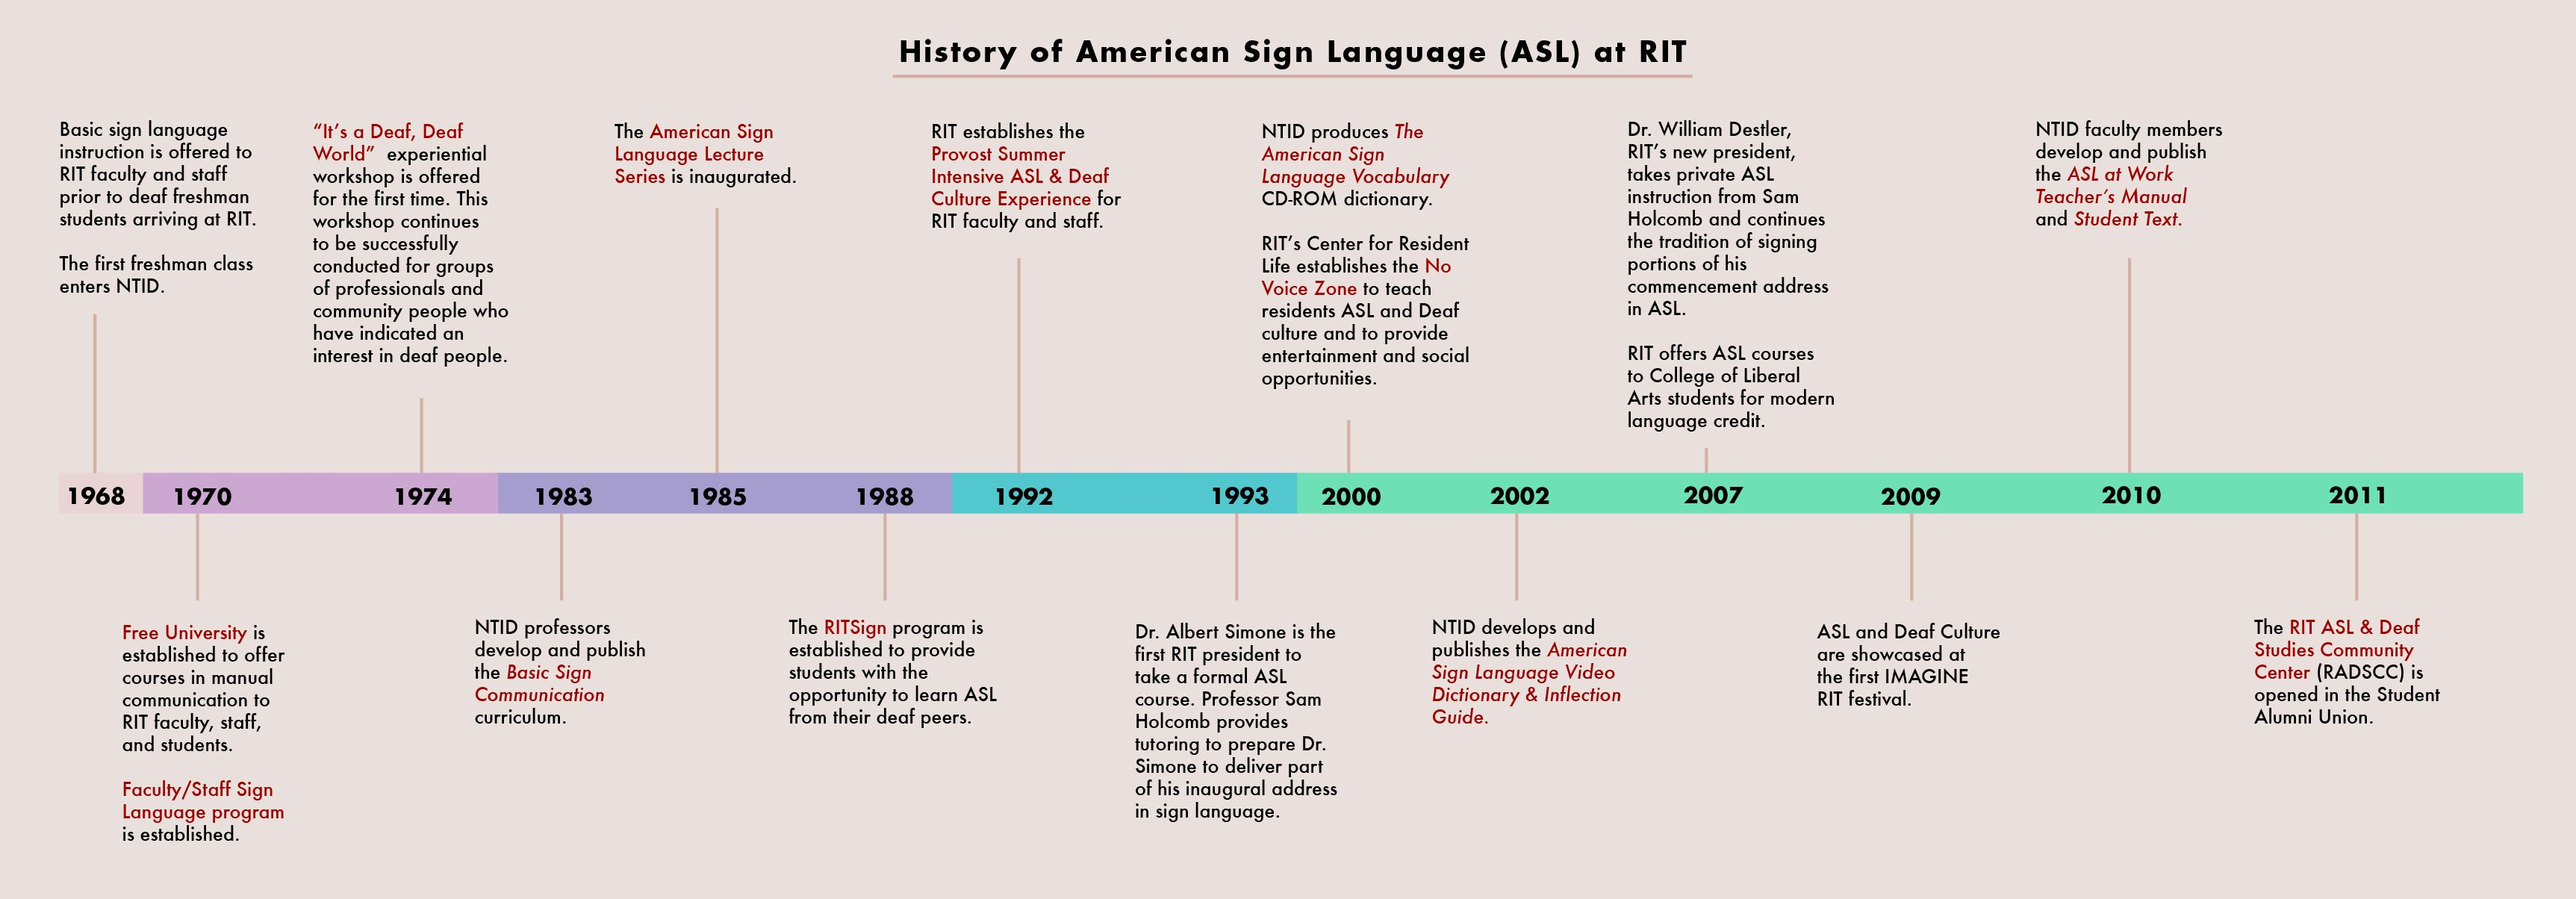 Asltimeline The History Of Asl At Rit Rochester Inst Of Technology In New York Shown